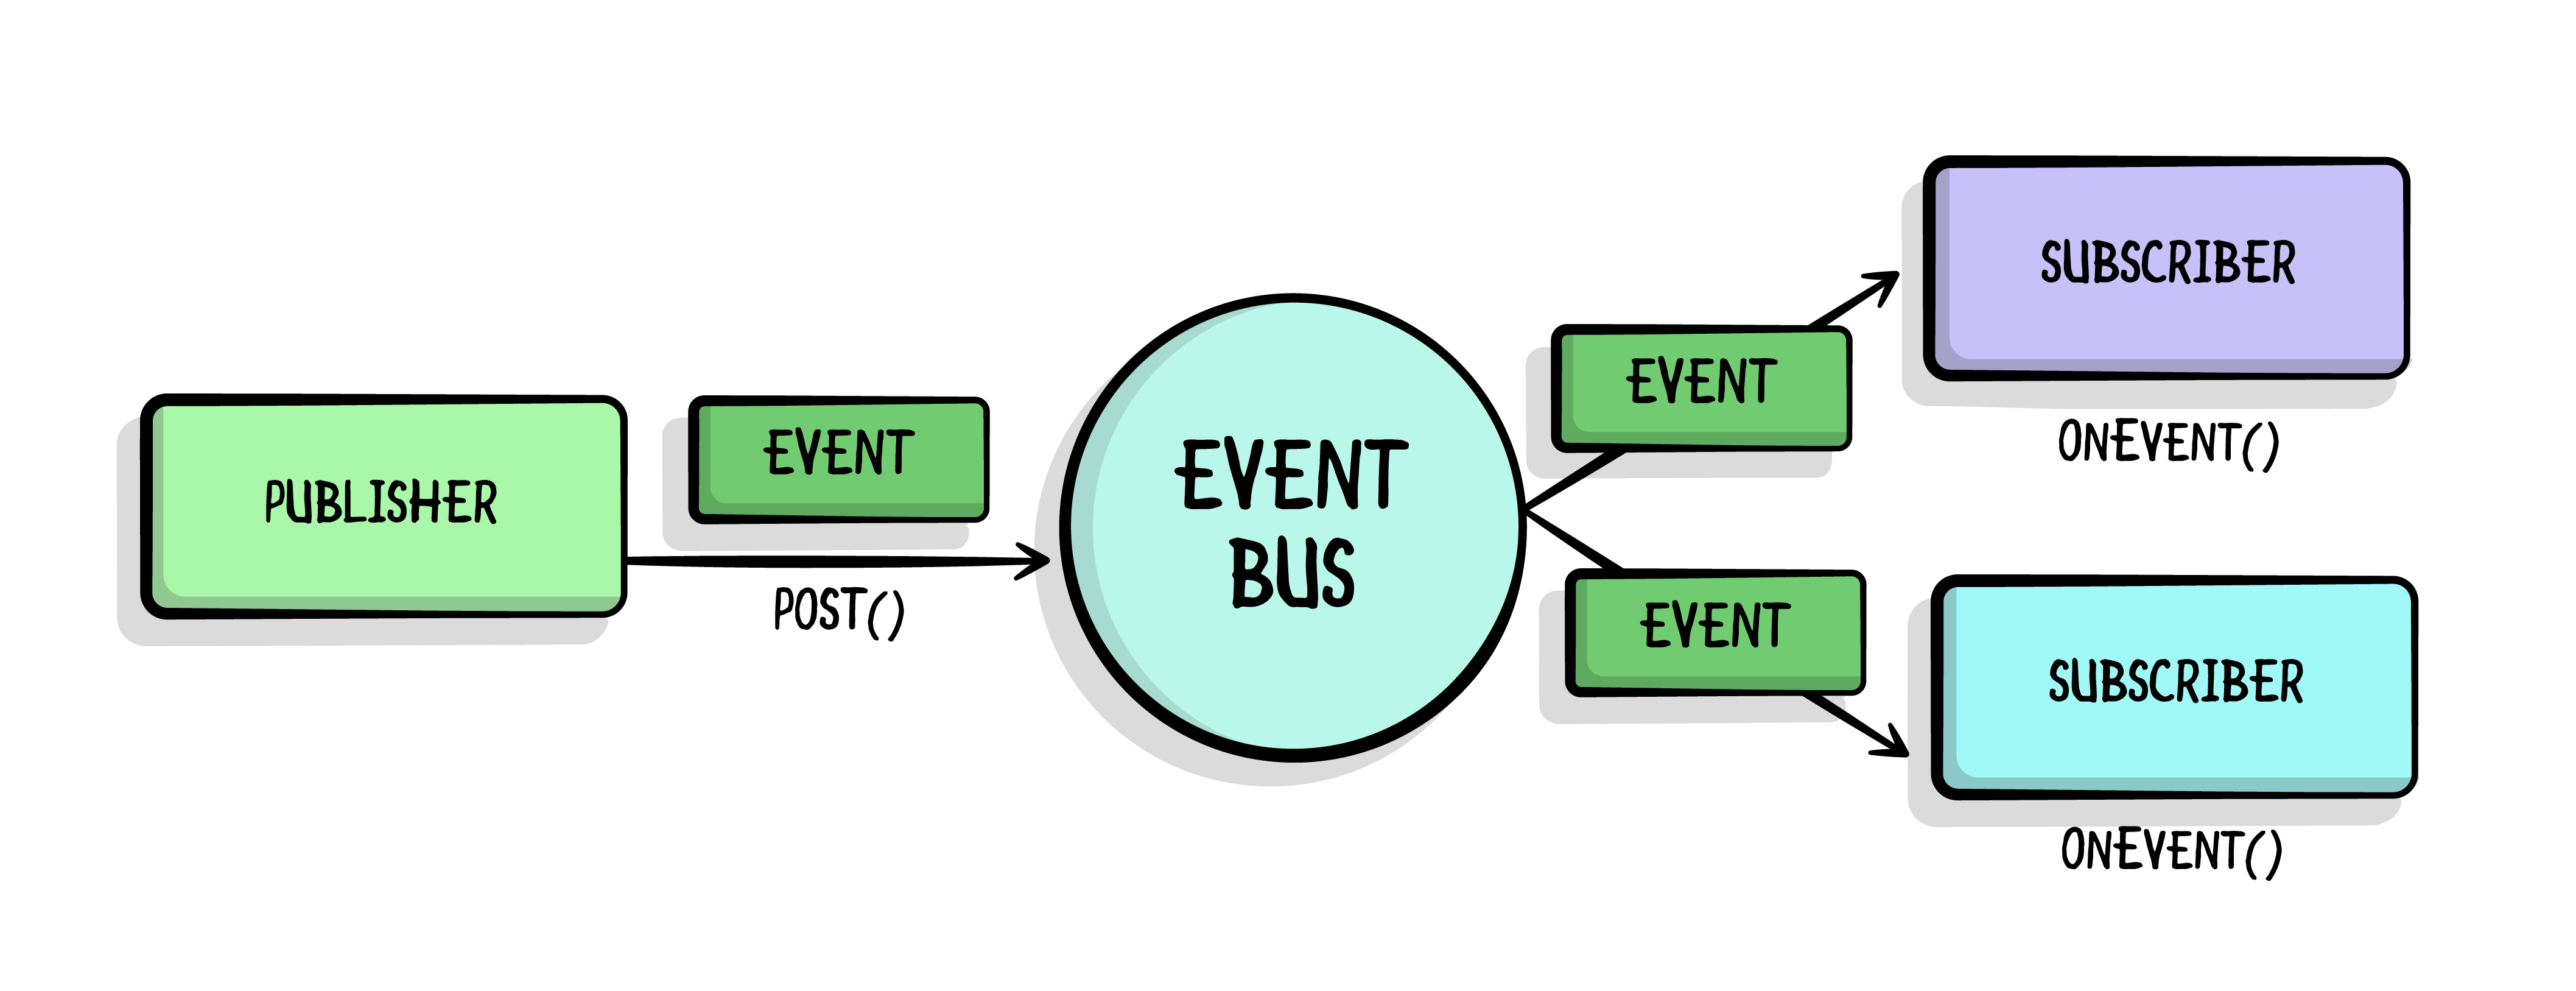 Flow chart that starts with a square block of a publisher, then points to the right to an Event Bus shown in a circle, the arrow connecting both has an Event square and a Post() method. The Event bus, has two arrows coming out and pointing to two subscribers,each labeled with a box, and the arrows also have events on them. The subscriber boxes trigger an OnEvent() method